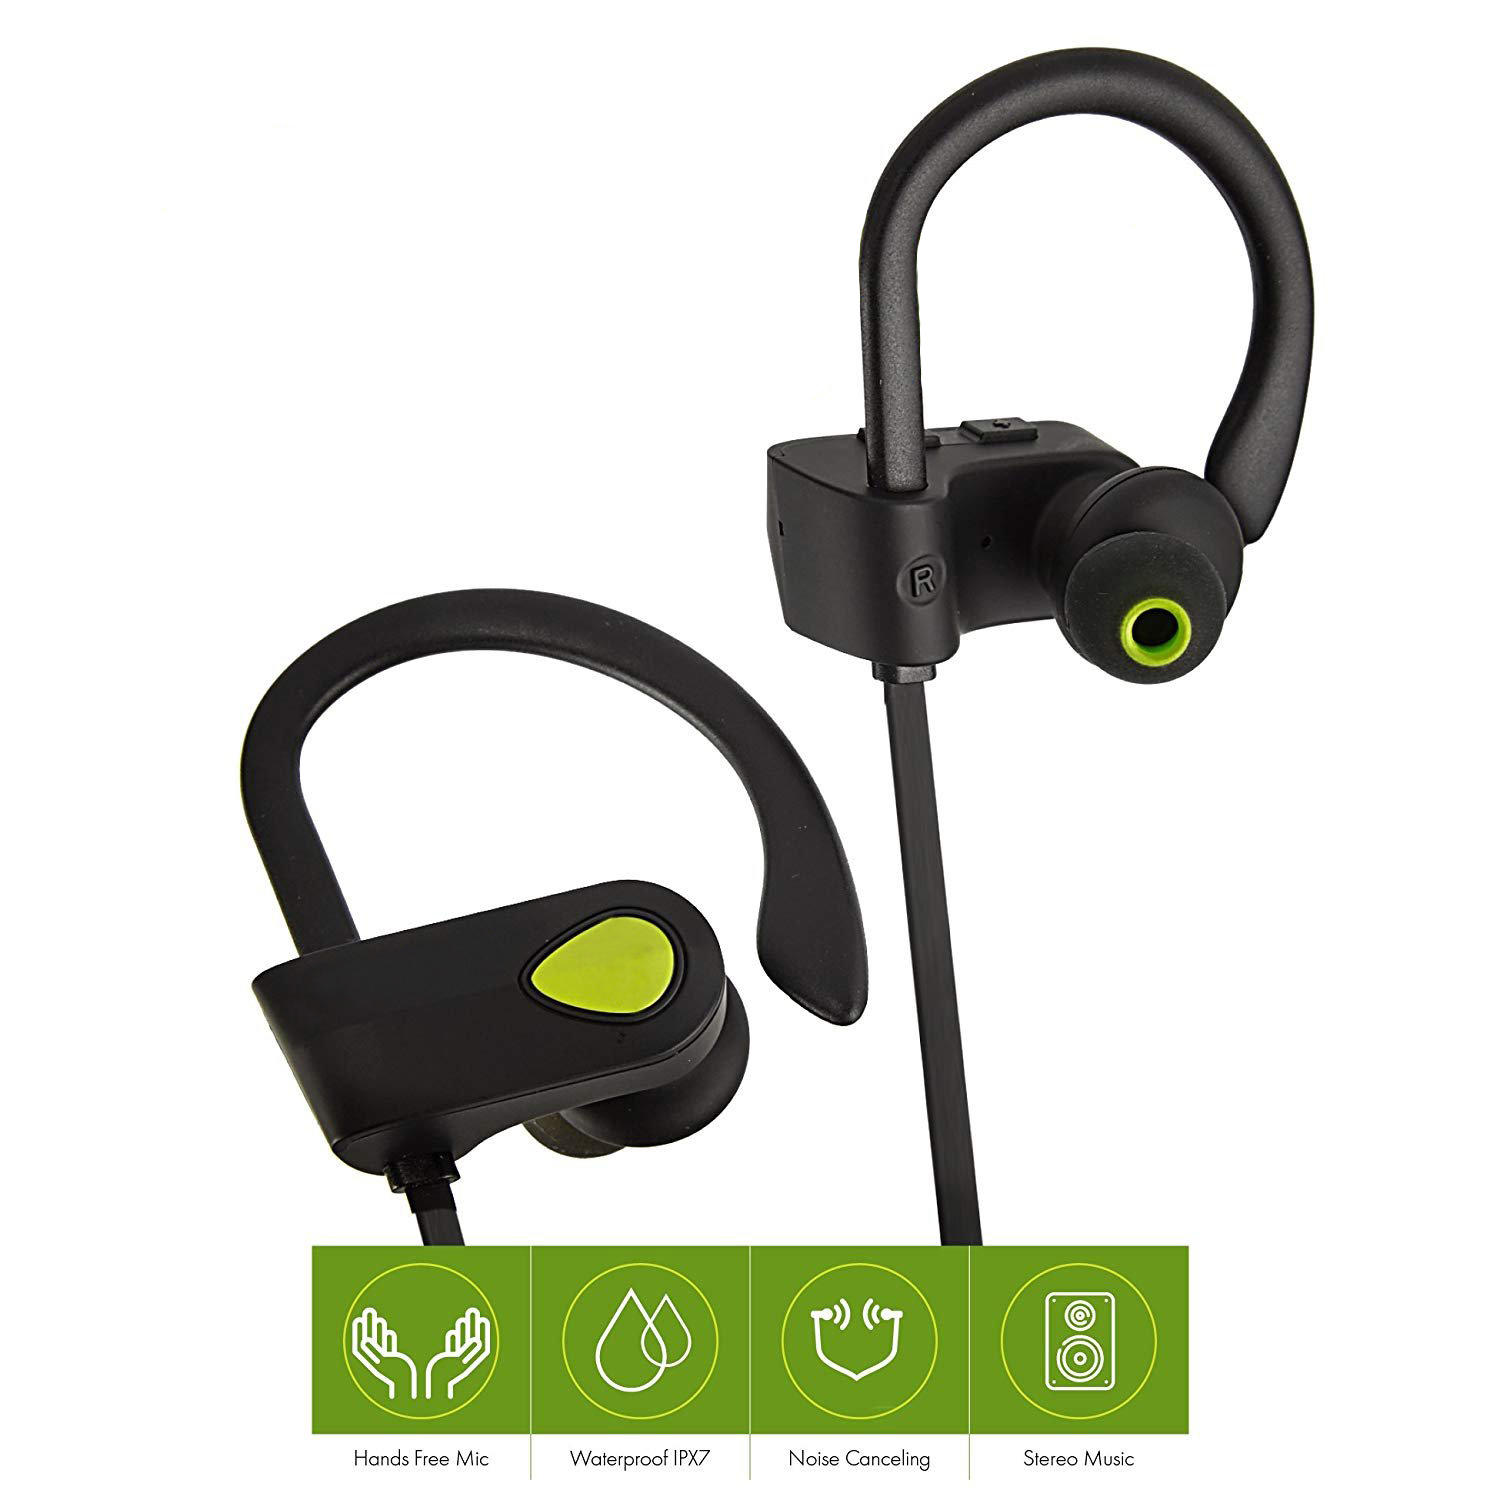 YueMai Acoustic Technology top quality cheap bluetooth headset with great bass for kids-3